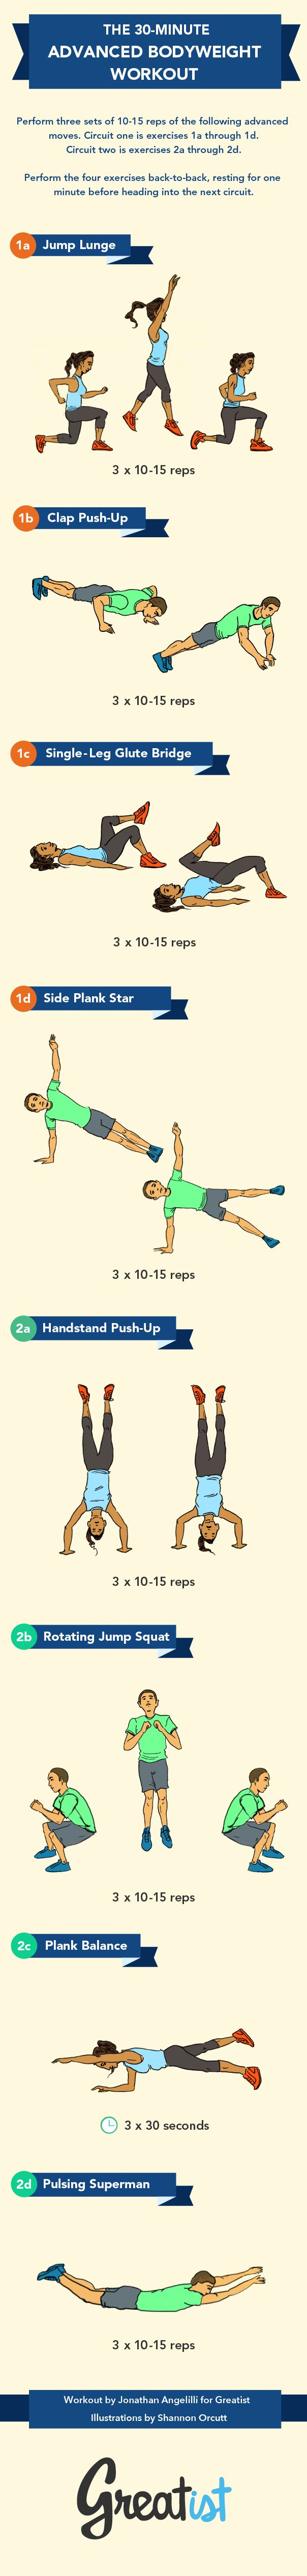 The Advanced No-Gym Bodyweight Workout [INFOGRAPHIC] | Greatist